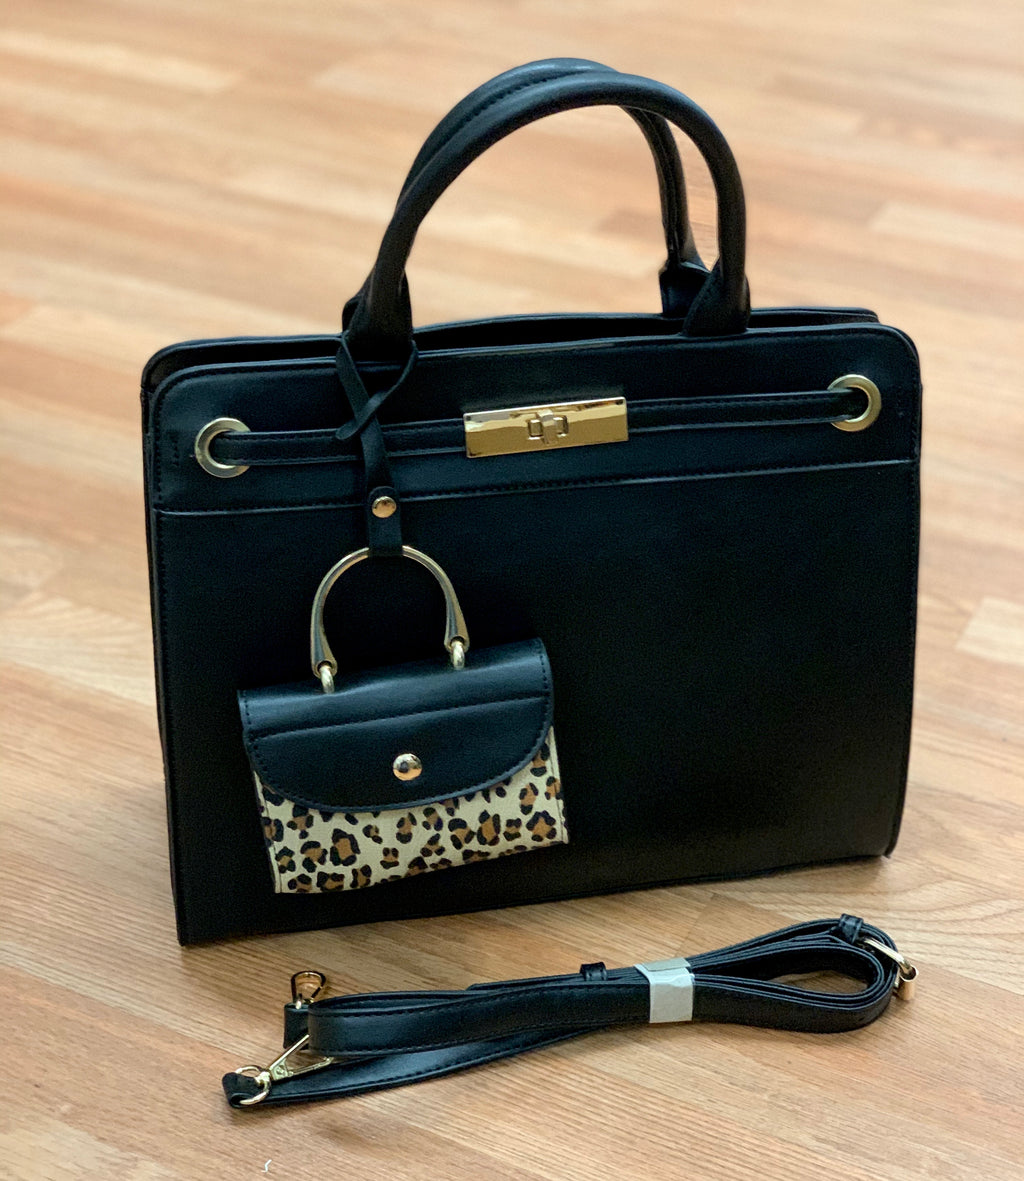 Bria Bella & Co - Classic Black Handbag & Clutch